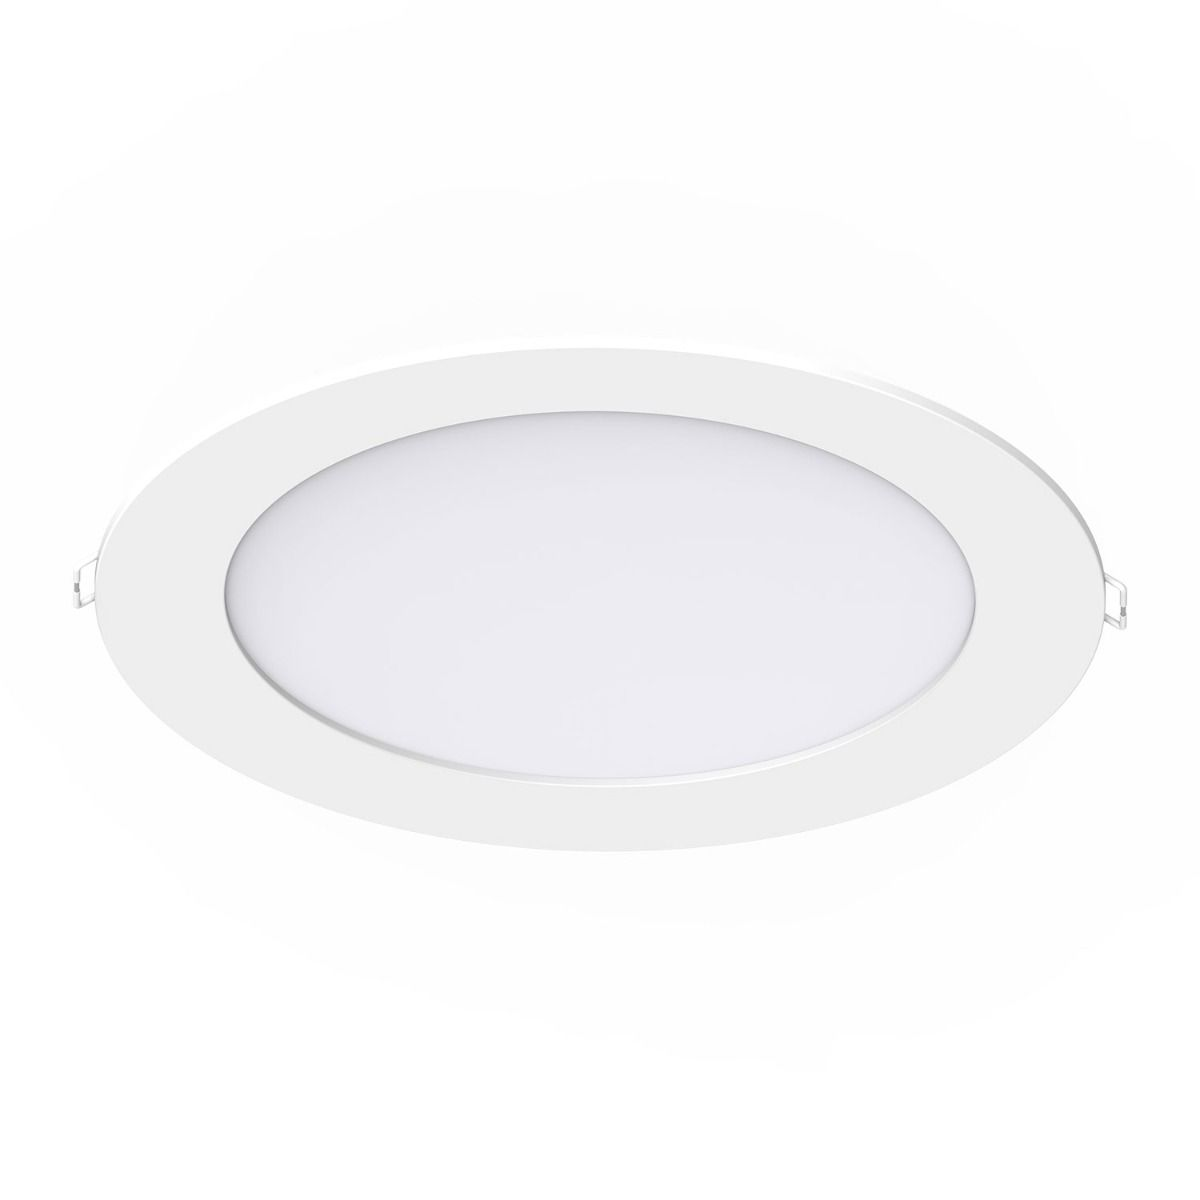 Noxion LED Downlight Slim V2.0 IP44 20W 3000K Utskärning   Ø200mm w/ 1-10V driver